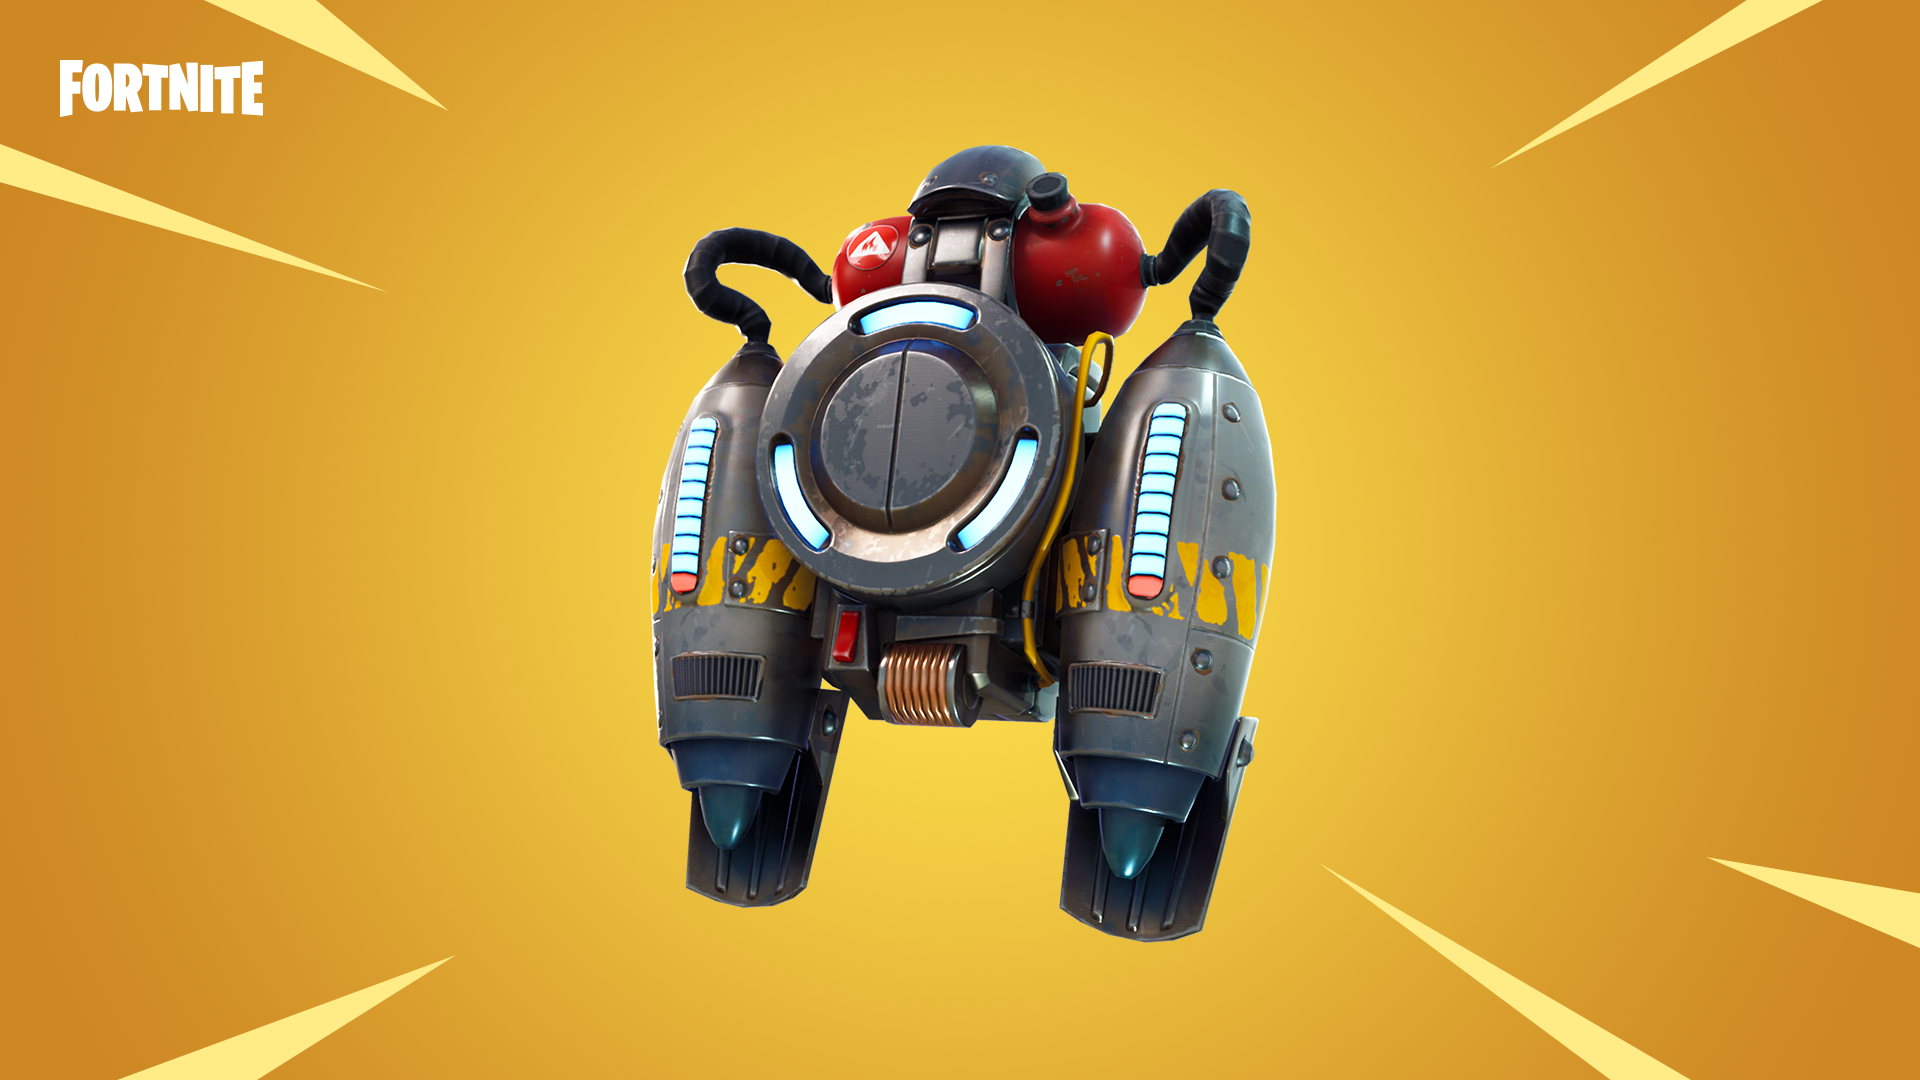 v4.2 Update Patch Notes (Jetpack, Close Encounters LTM)